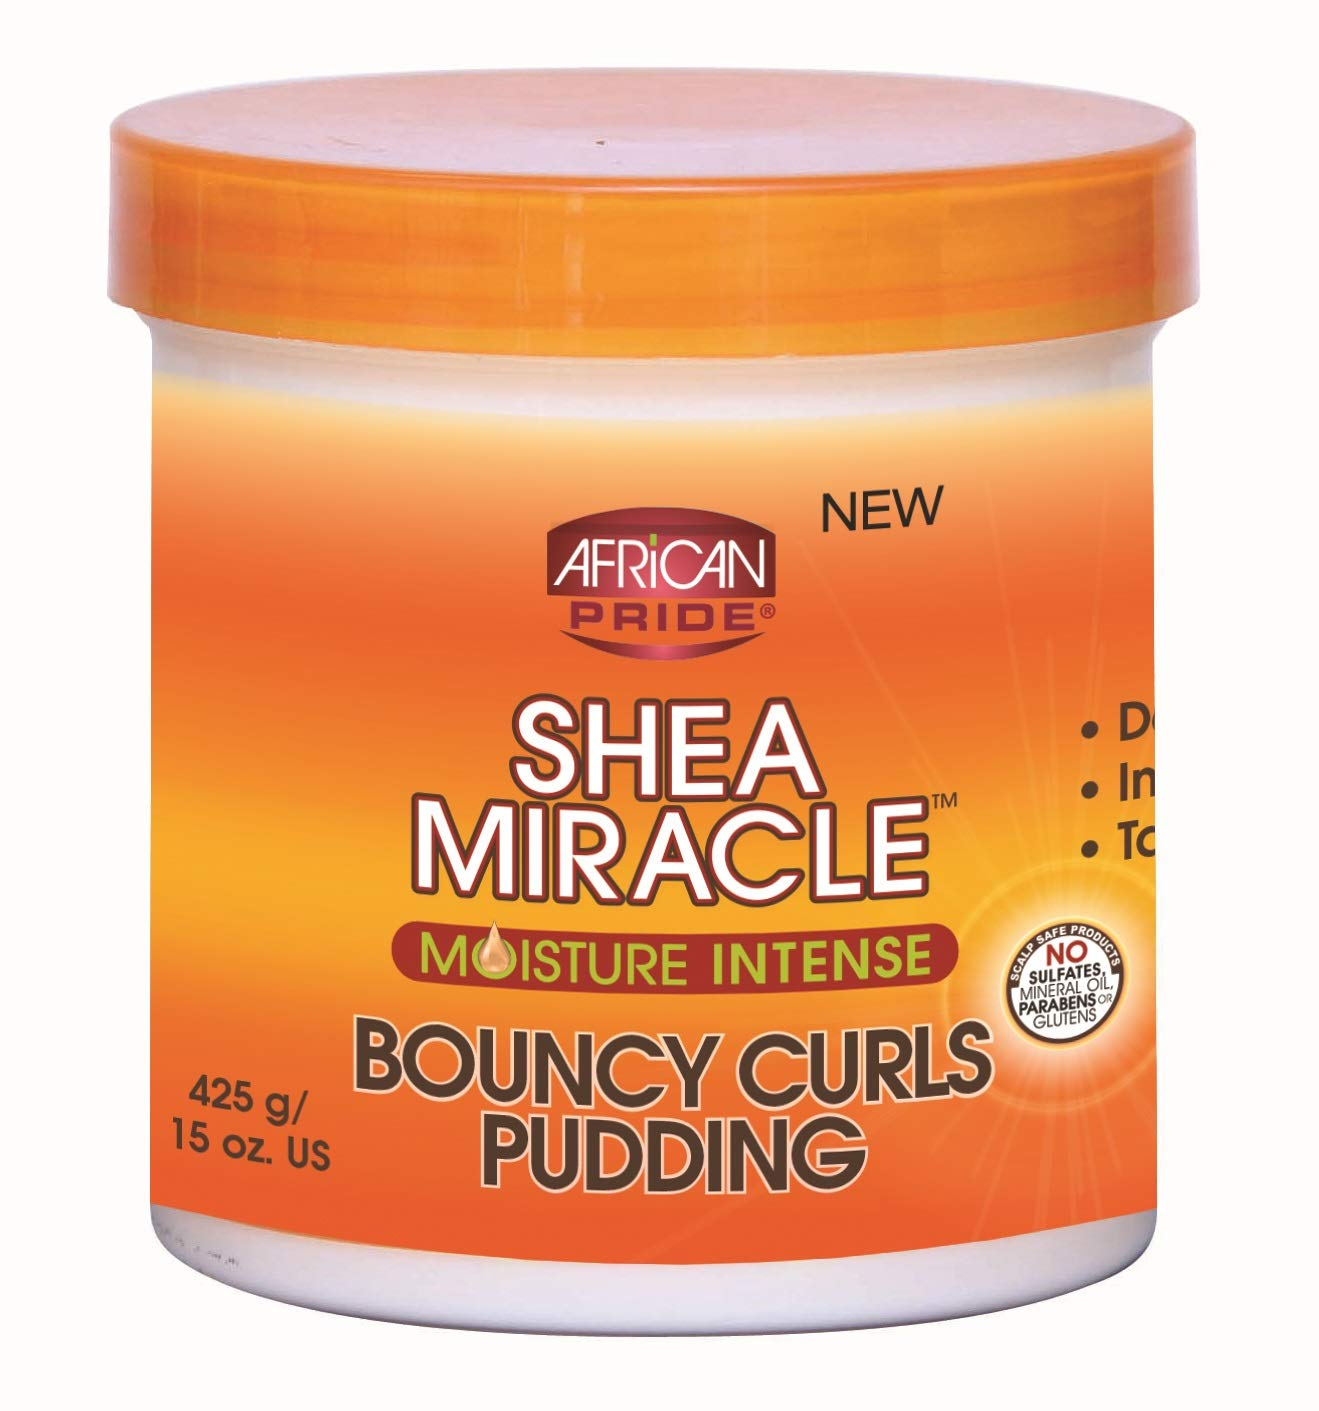 African Pride Shea Butter Miracle Bouncy Curls Pudding 15 Ounce Jar (443ml) (2 Pack)